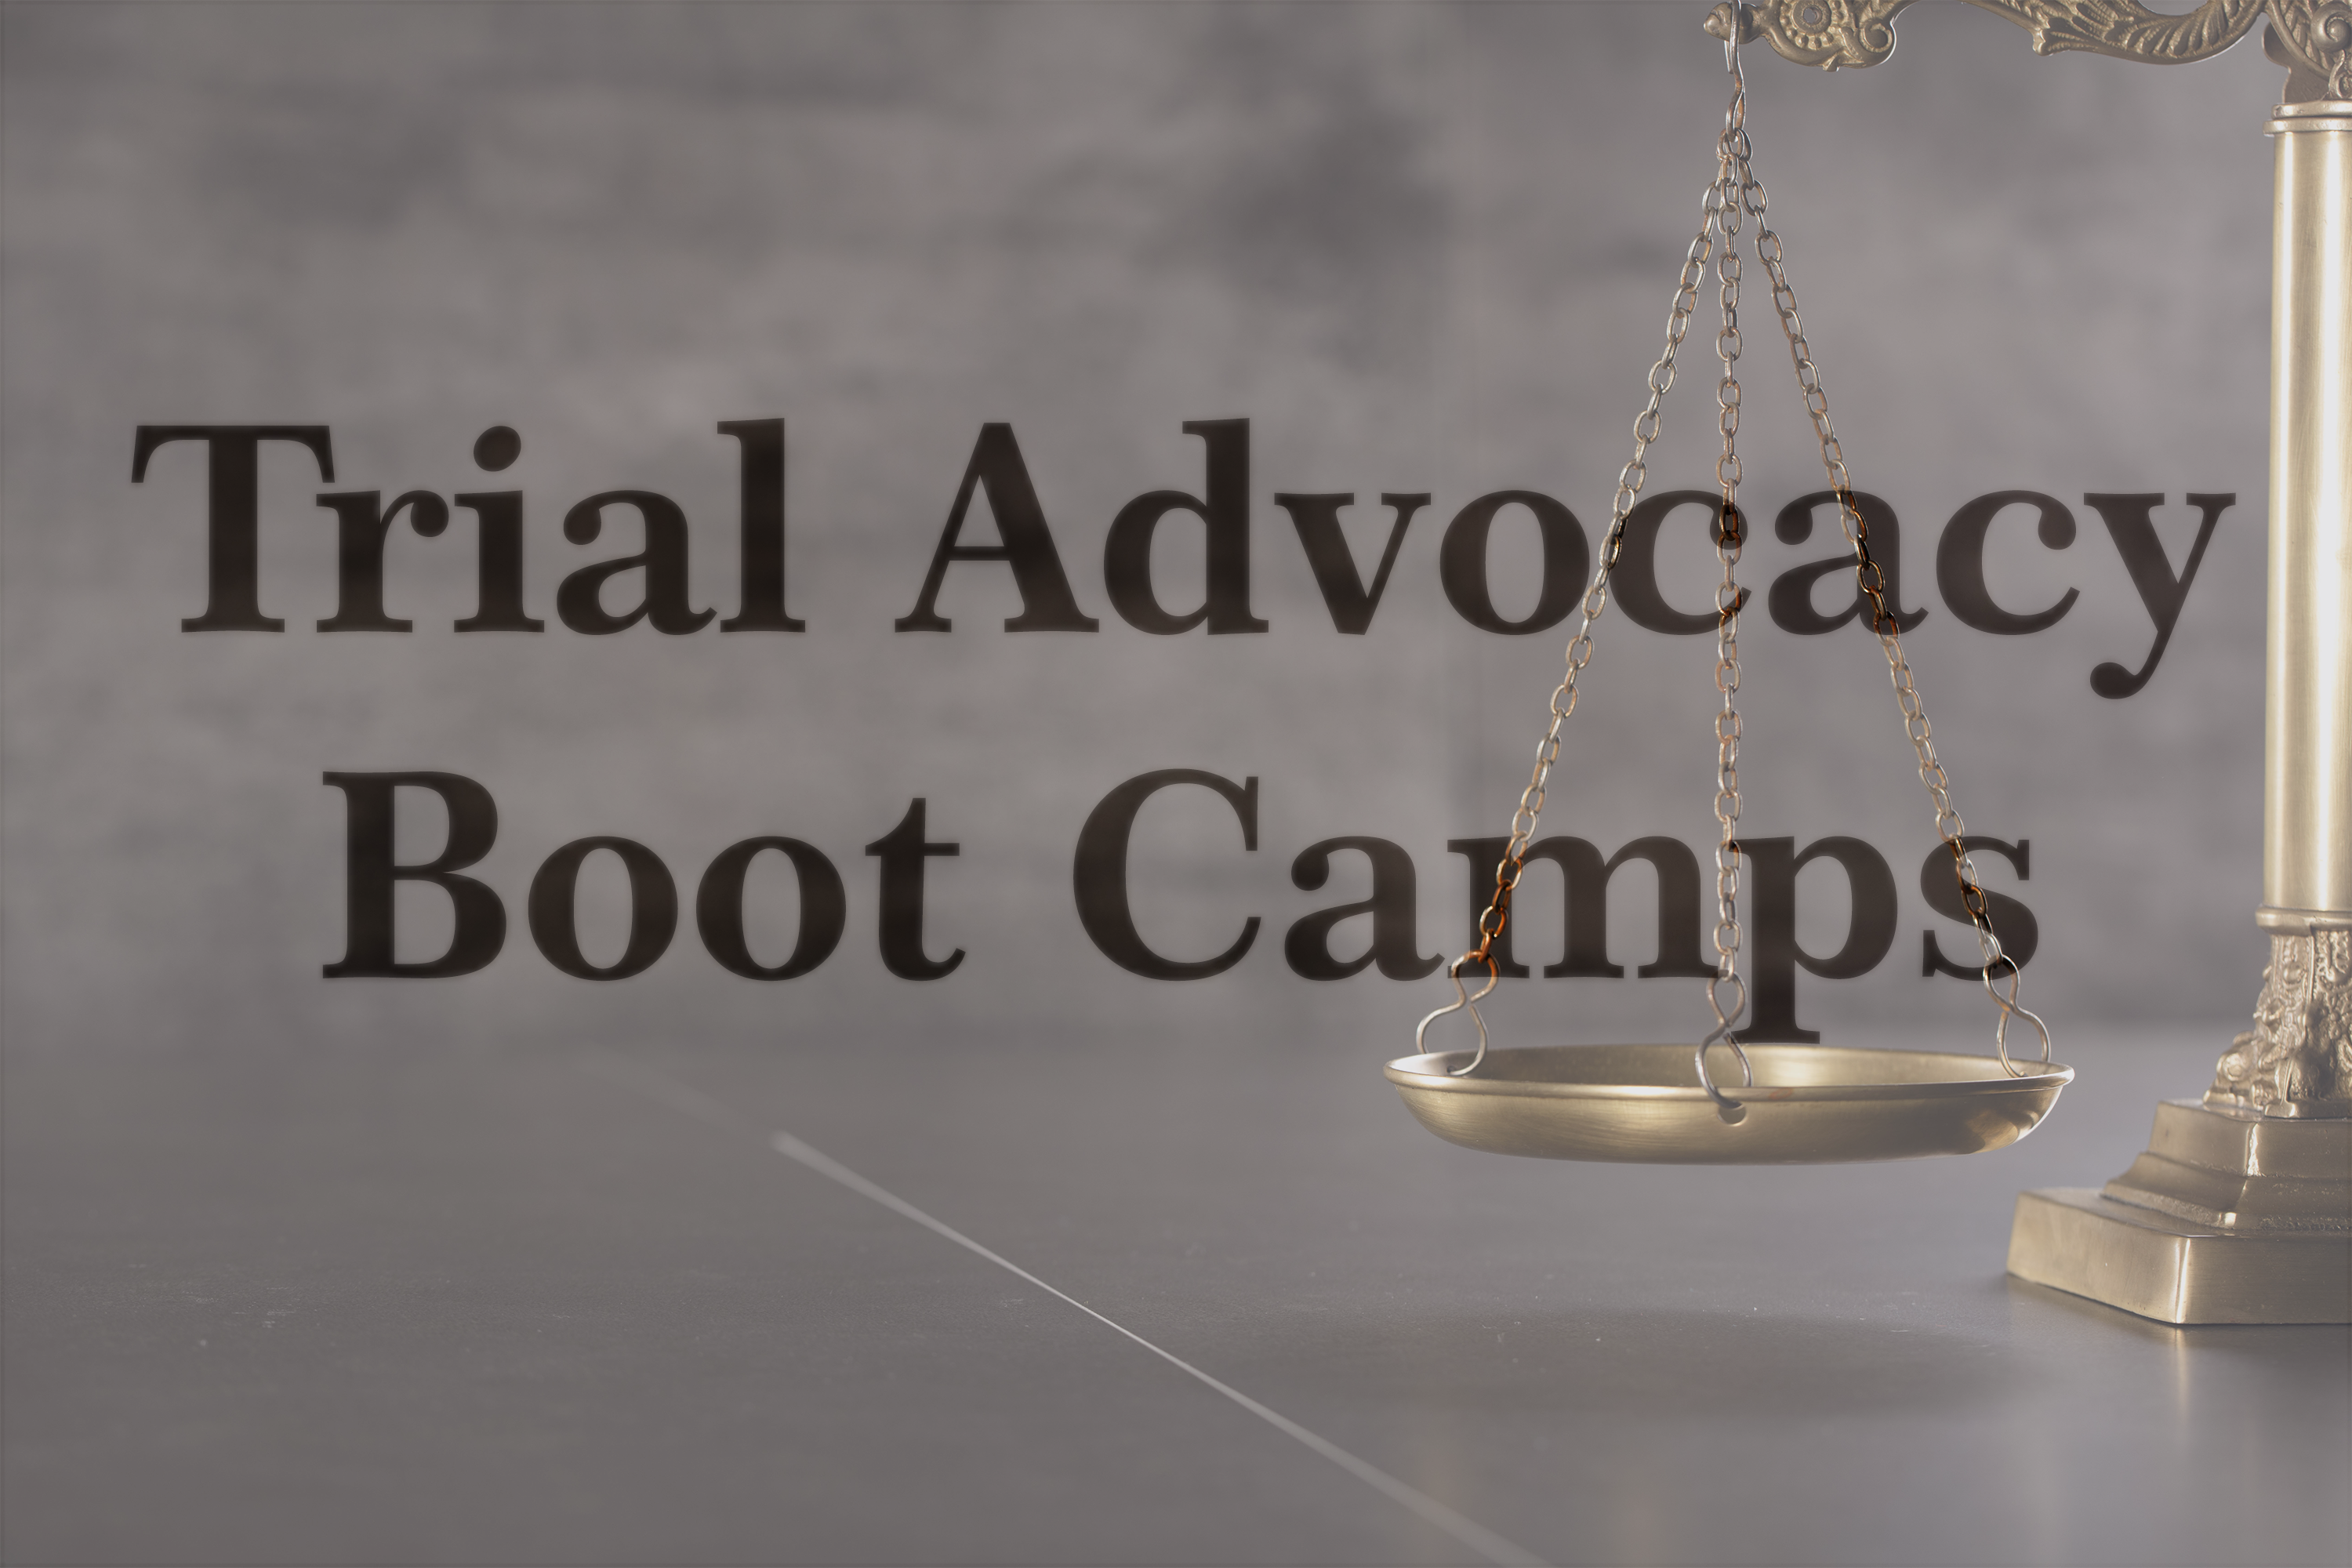 Trial Advocacy Boot Camps